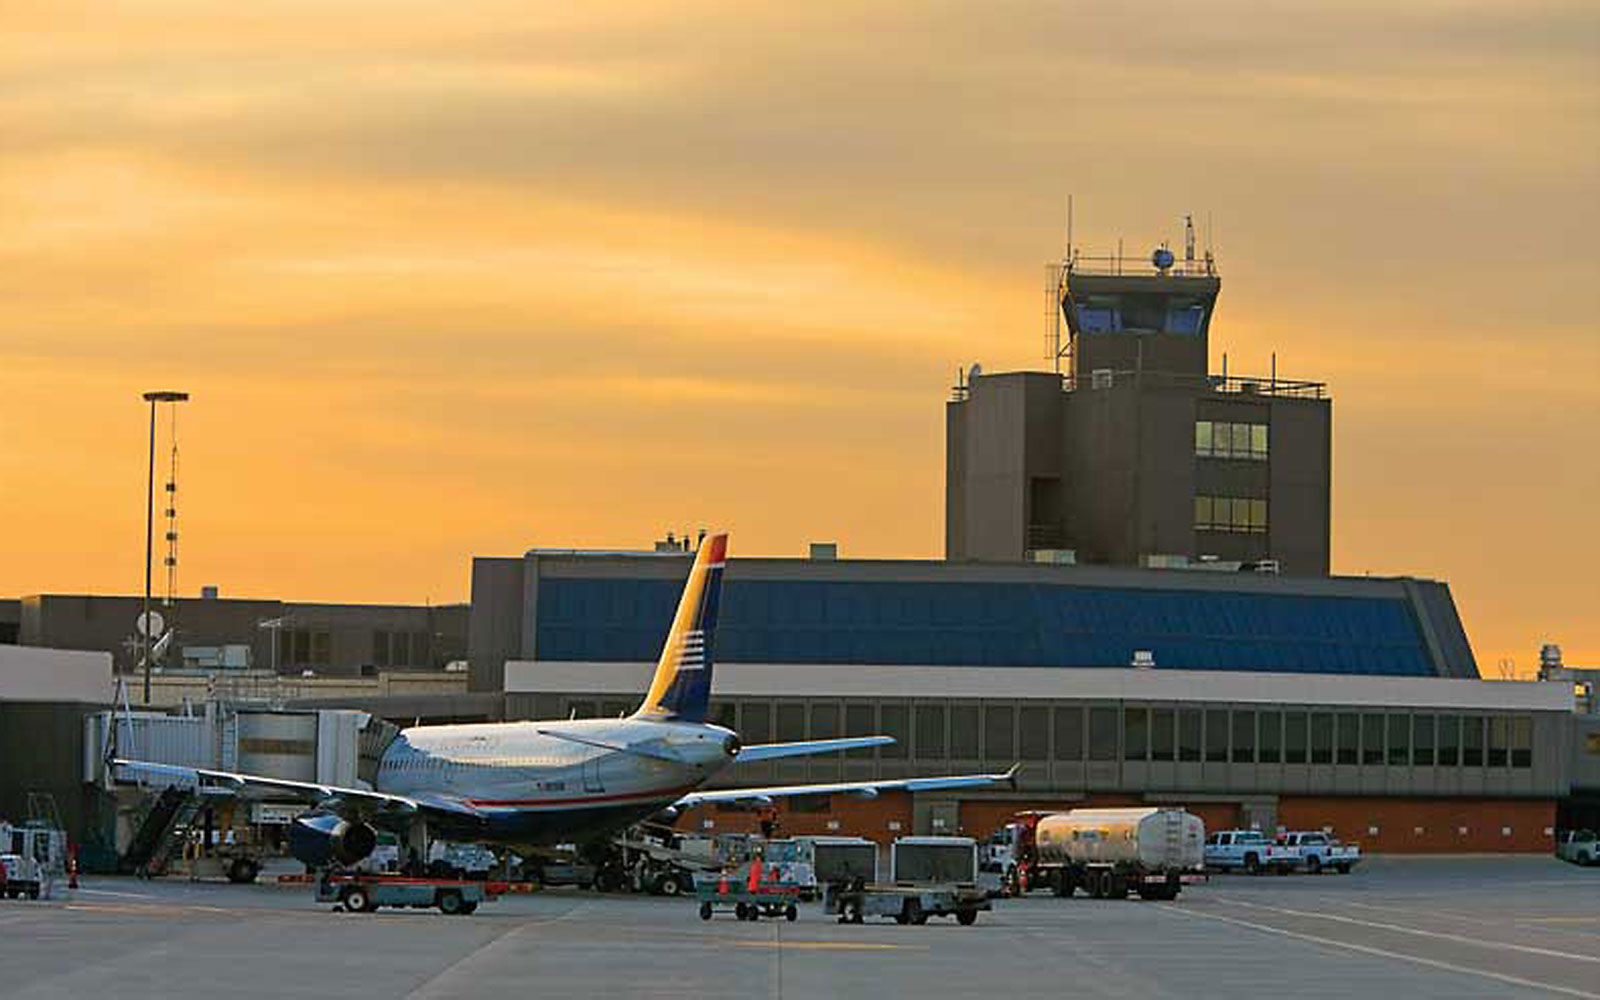 World's Easiest Airports: Salt Lake City International Airport (SLC), Salt Lake City UT